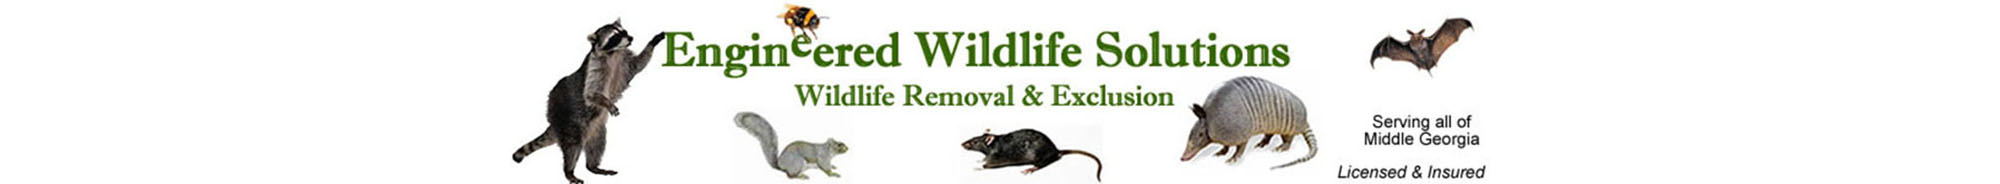 Engineered Wildlife Solutions